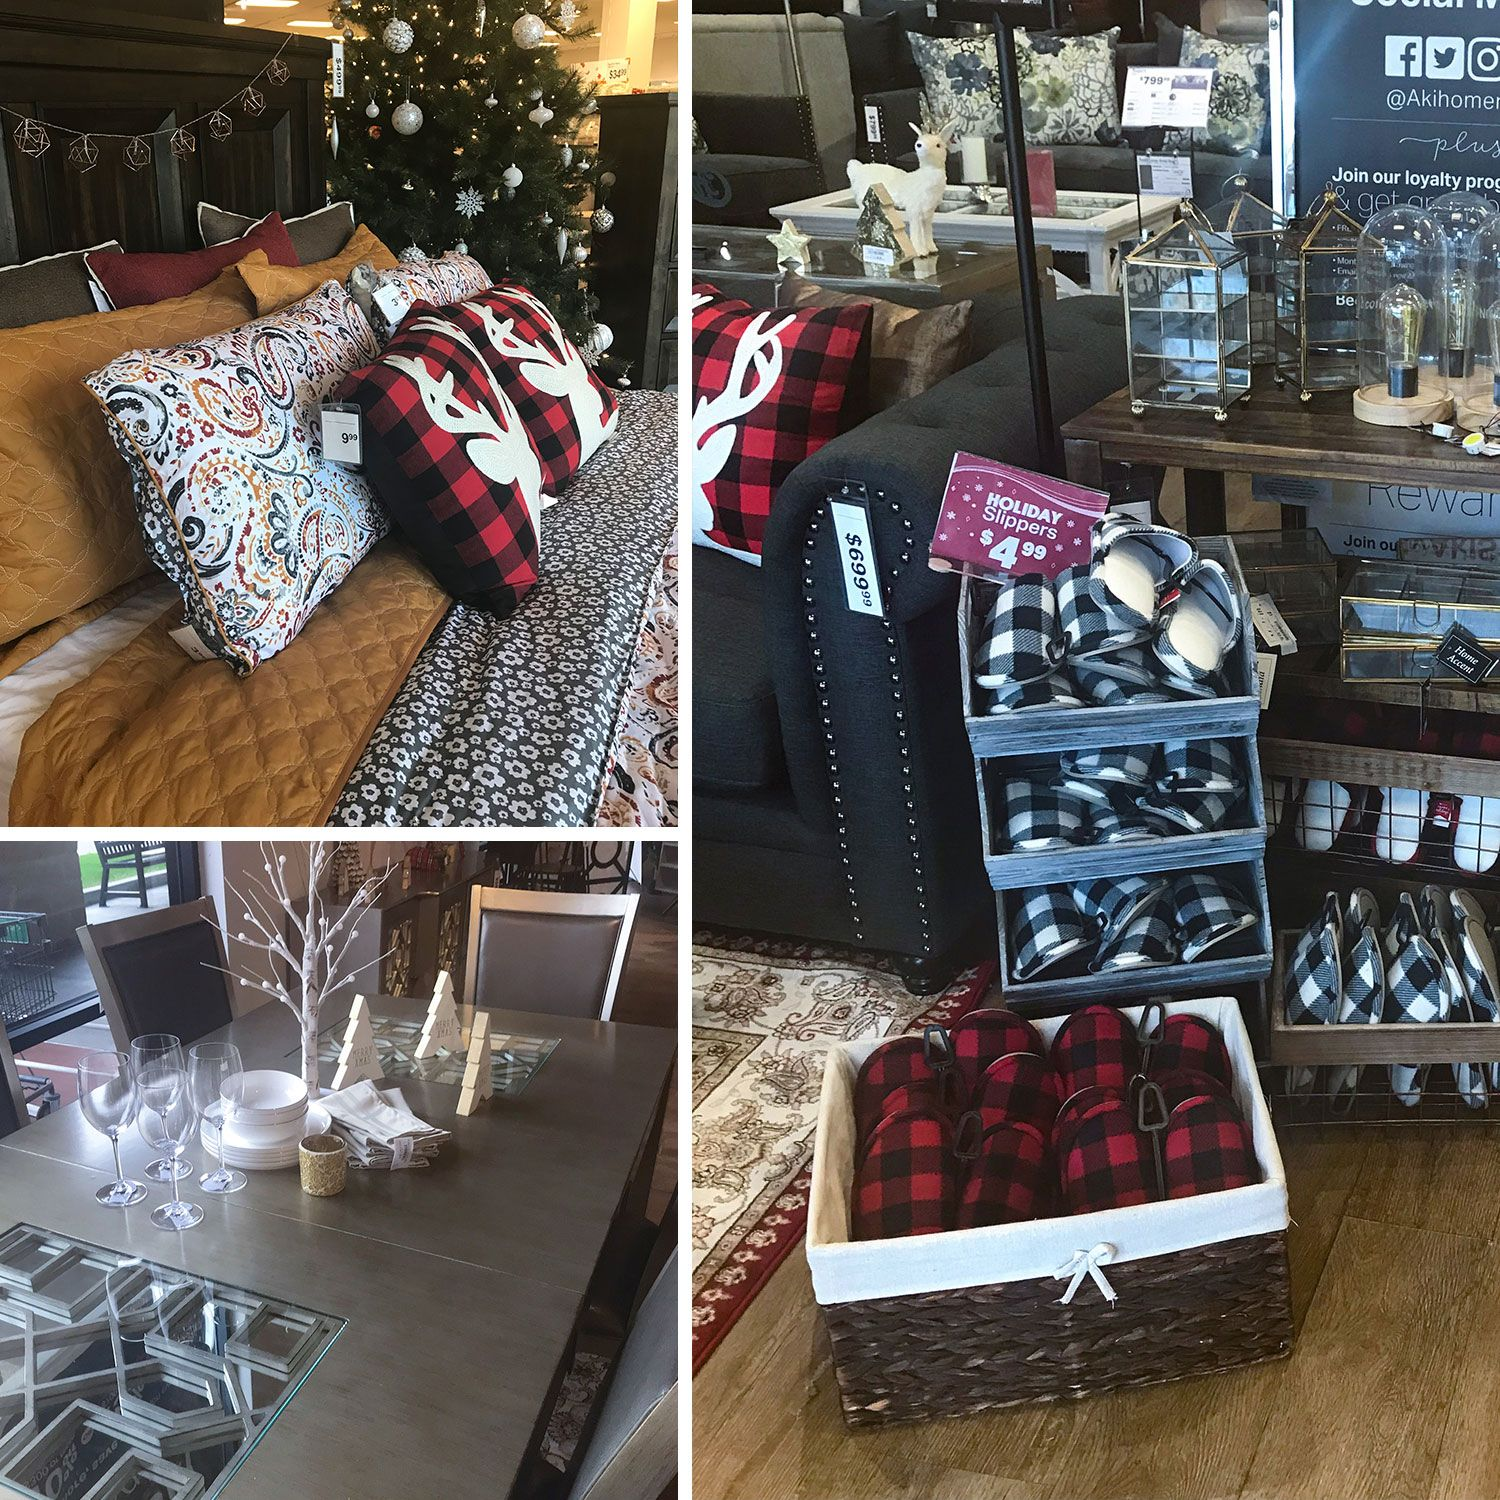 Bon Christmas Set Up In Chino Store Location. Shop Gifts Under $25 And Get  Ready For